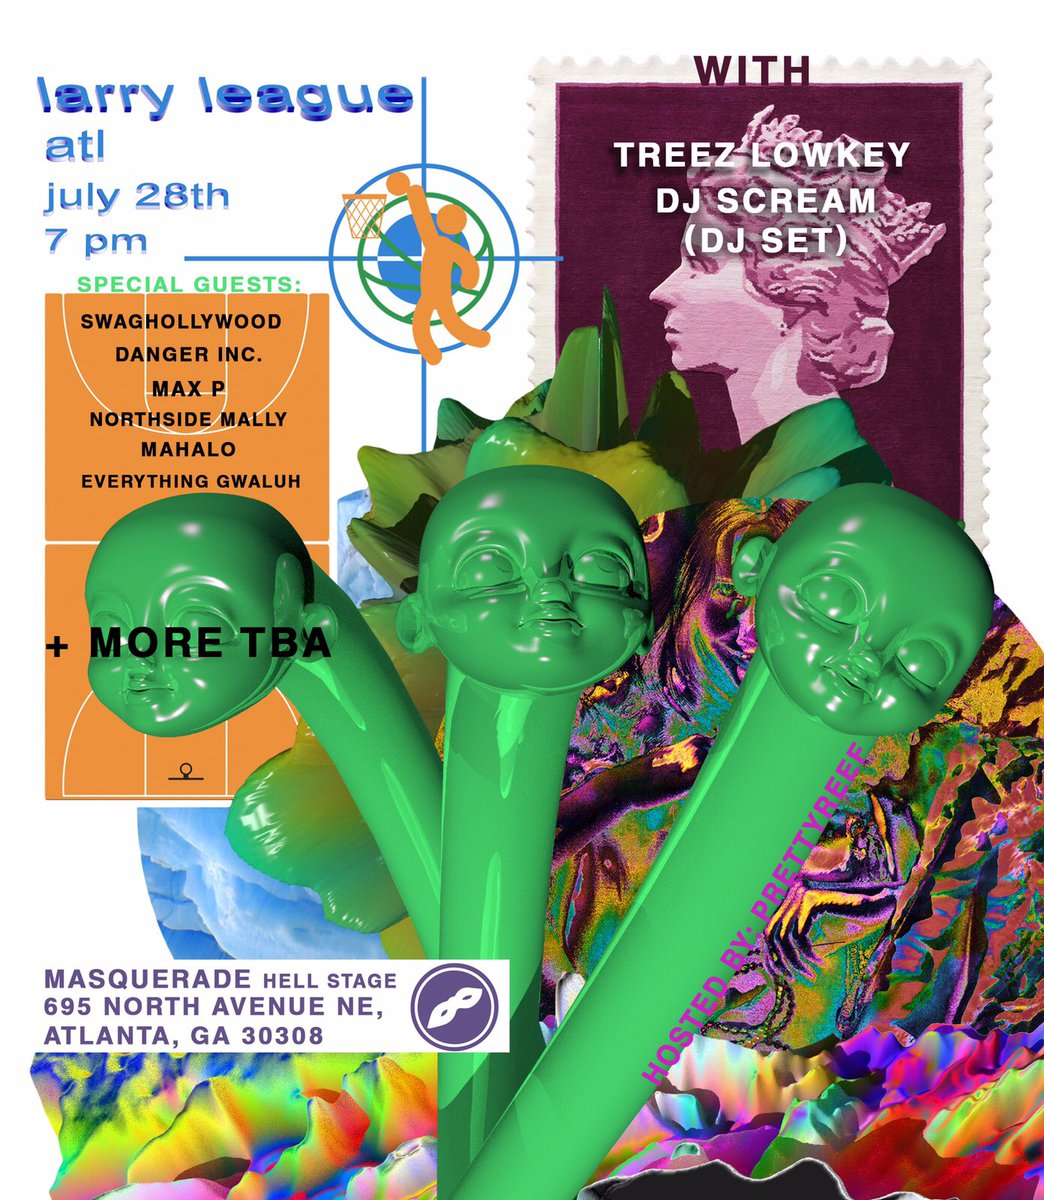 ...Tomorrow.. @larry_league .. Show of the summer.. Get your tickets a https://t.co/7gi8ZAudtQ  or dm for purchase. https://t.co/QpoJTSilel